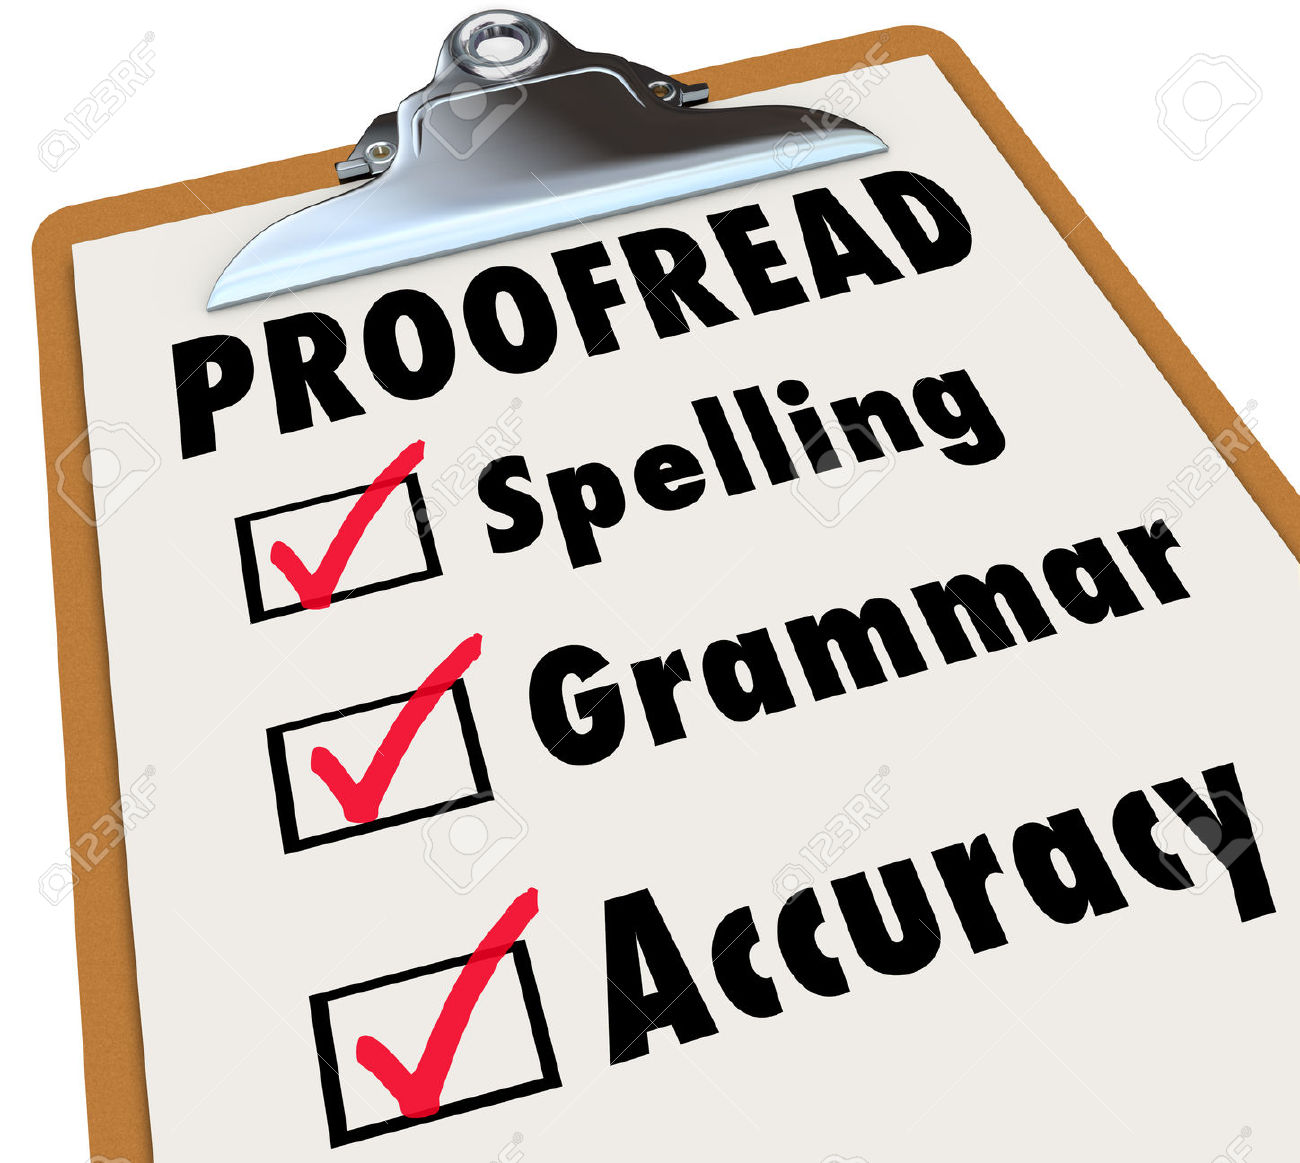 004 Essay Proofreader Spanish Proof Checklist And Checked Boxes Next The Words Spelling Grammar Accuracy Things Stock Photo Proofreading Exercise Online Correction Free Editing Sensational Persuasive College Service Full